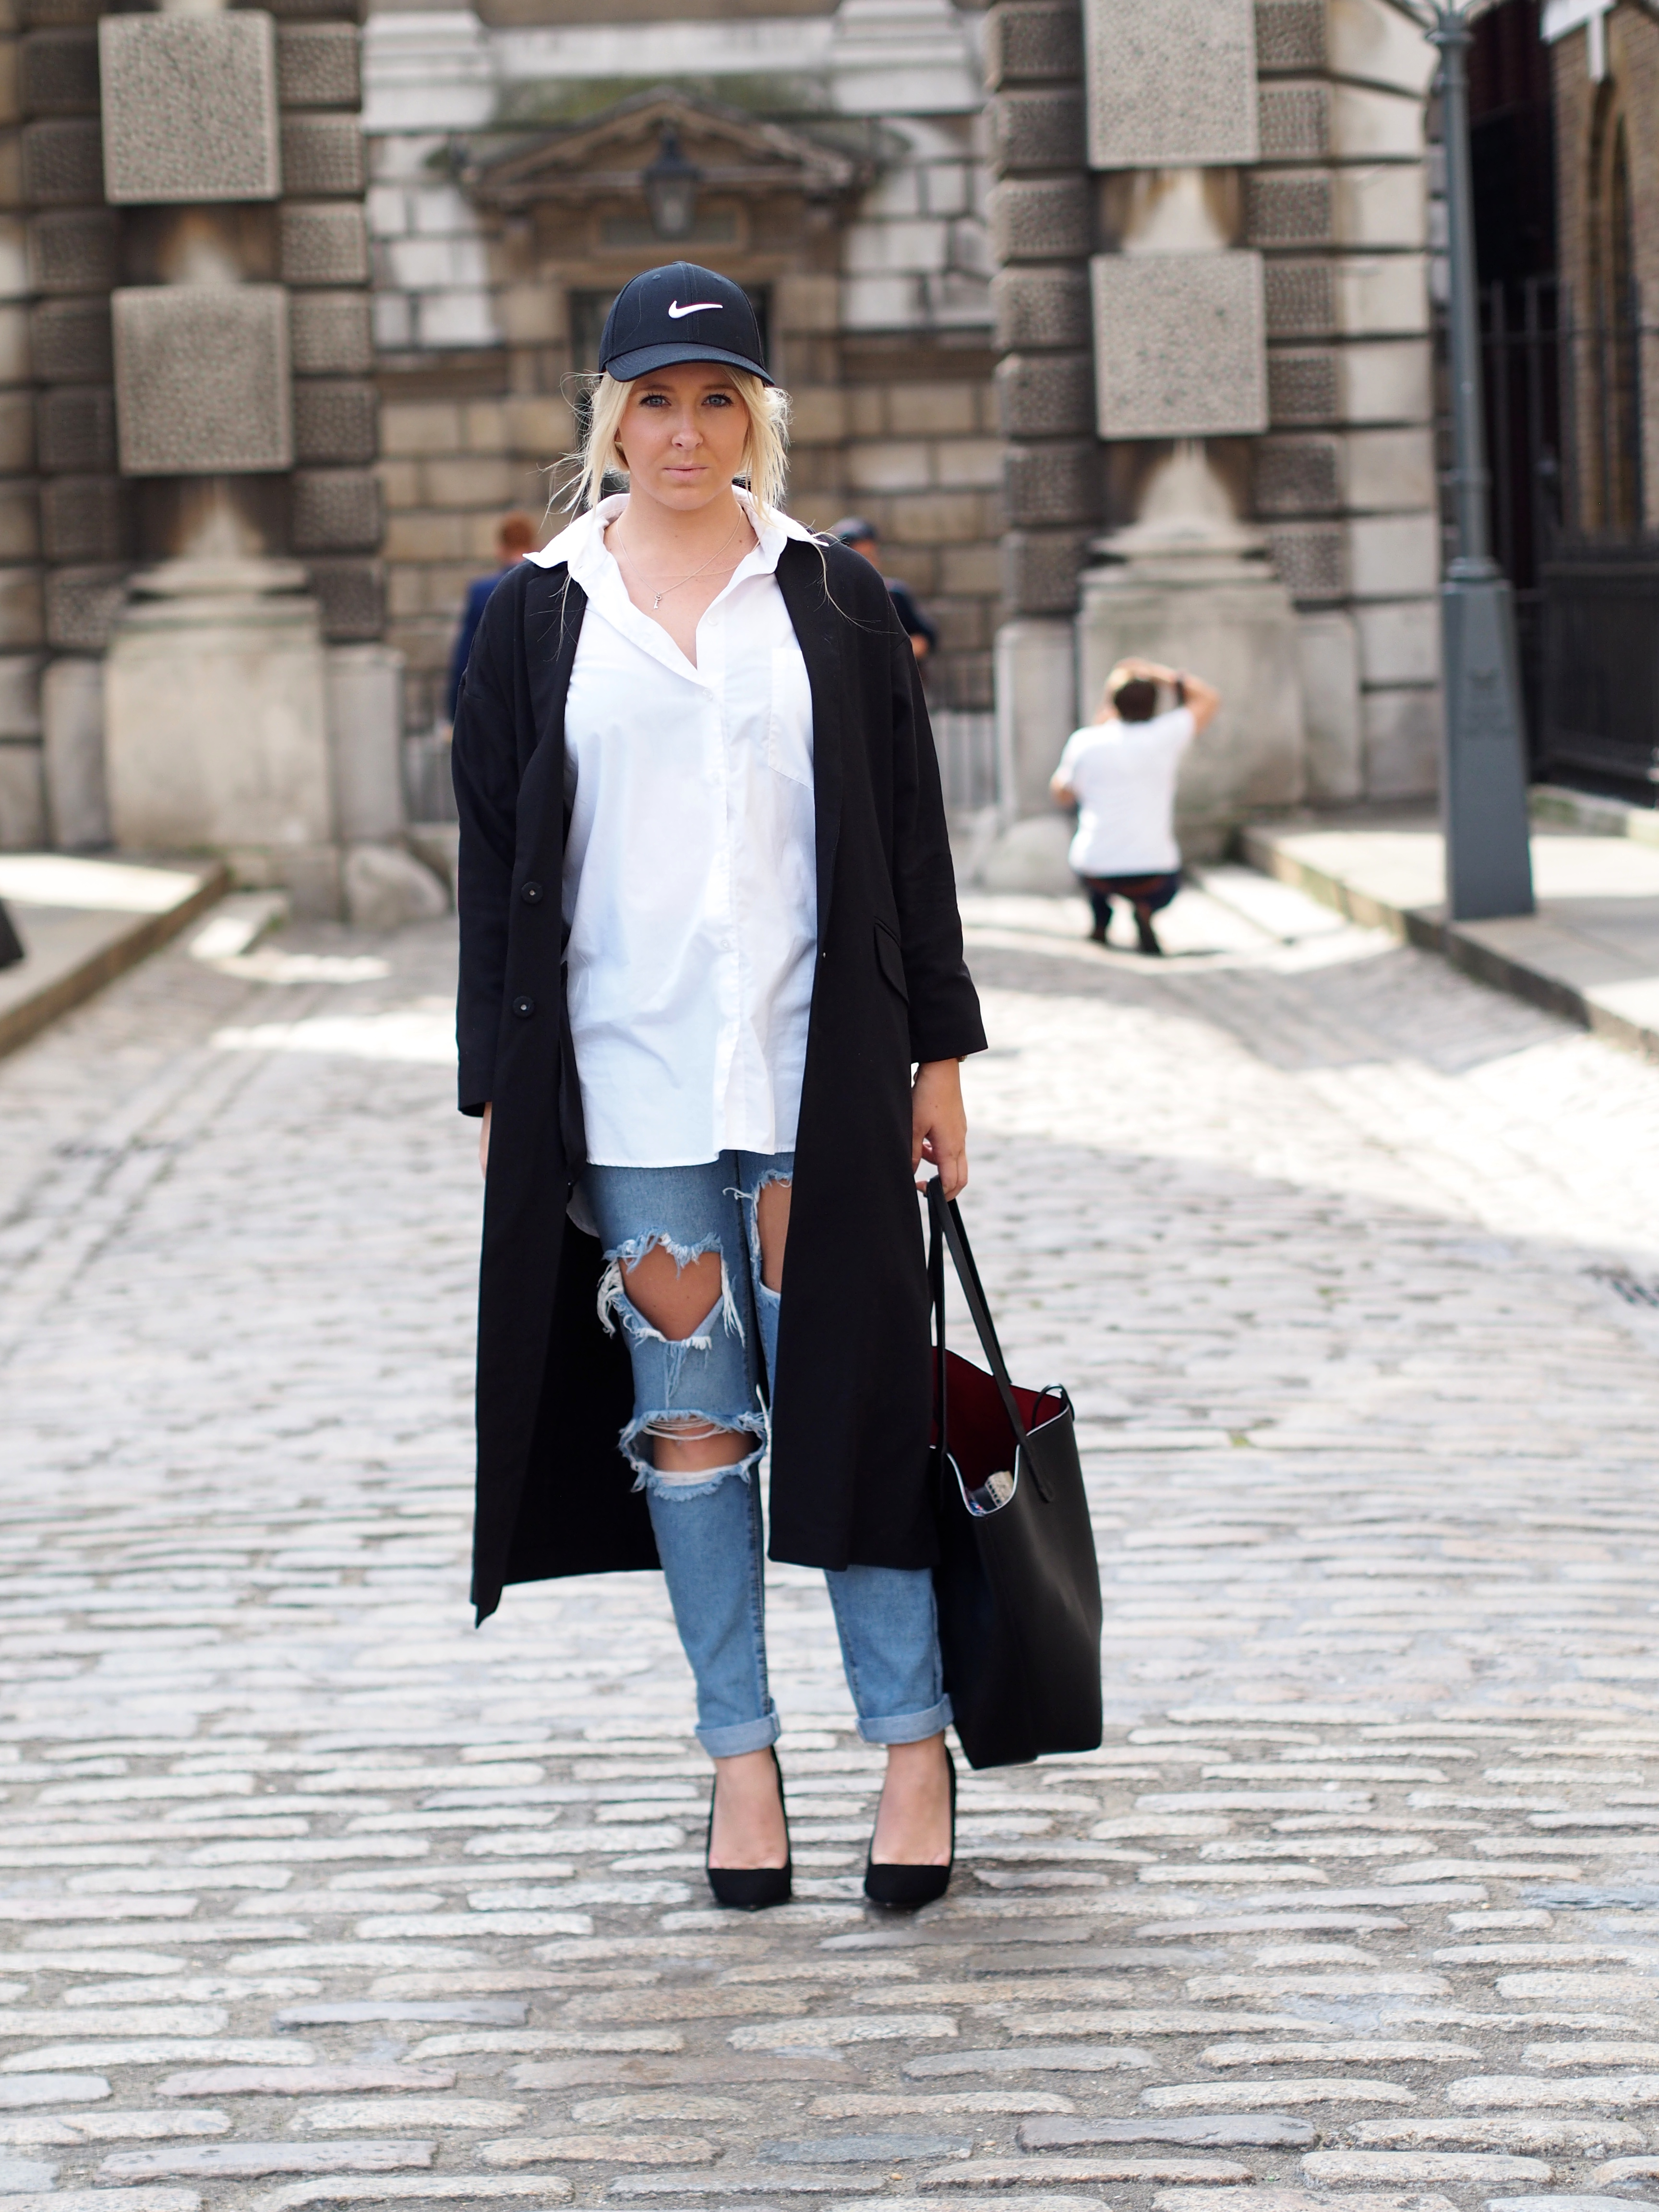 Streetstyle London Fashionweek Somerset House blogger Joanne Christina Lewis